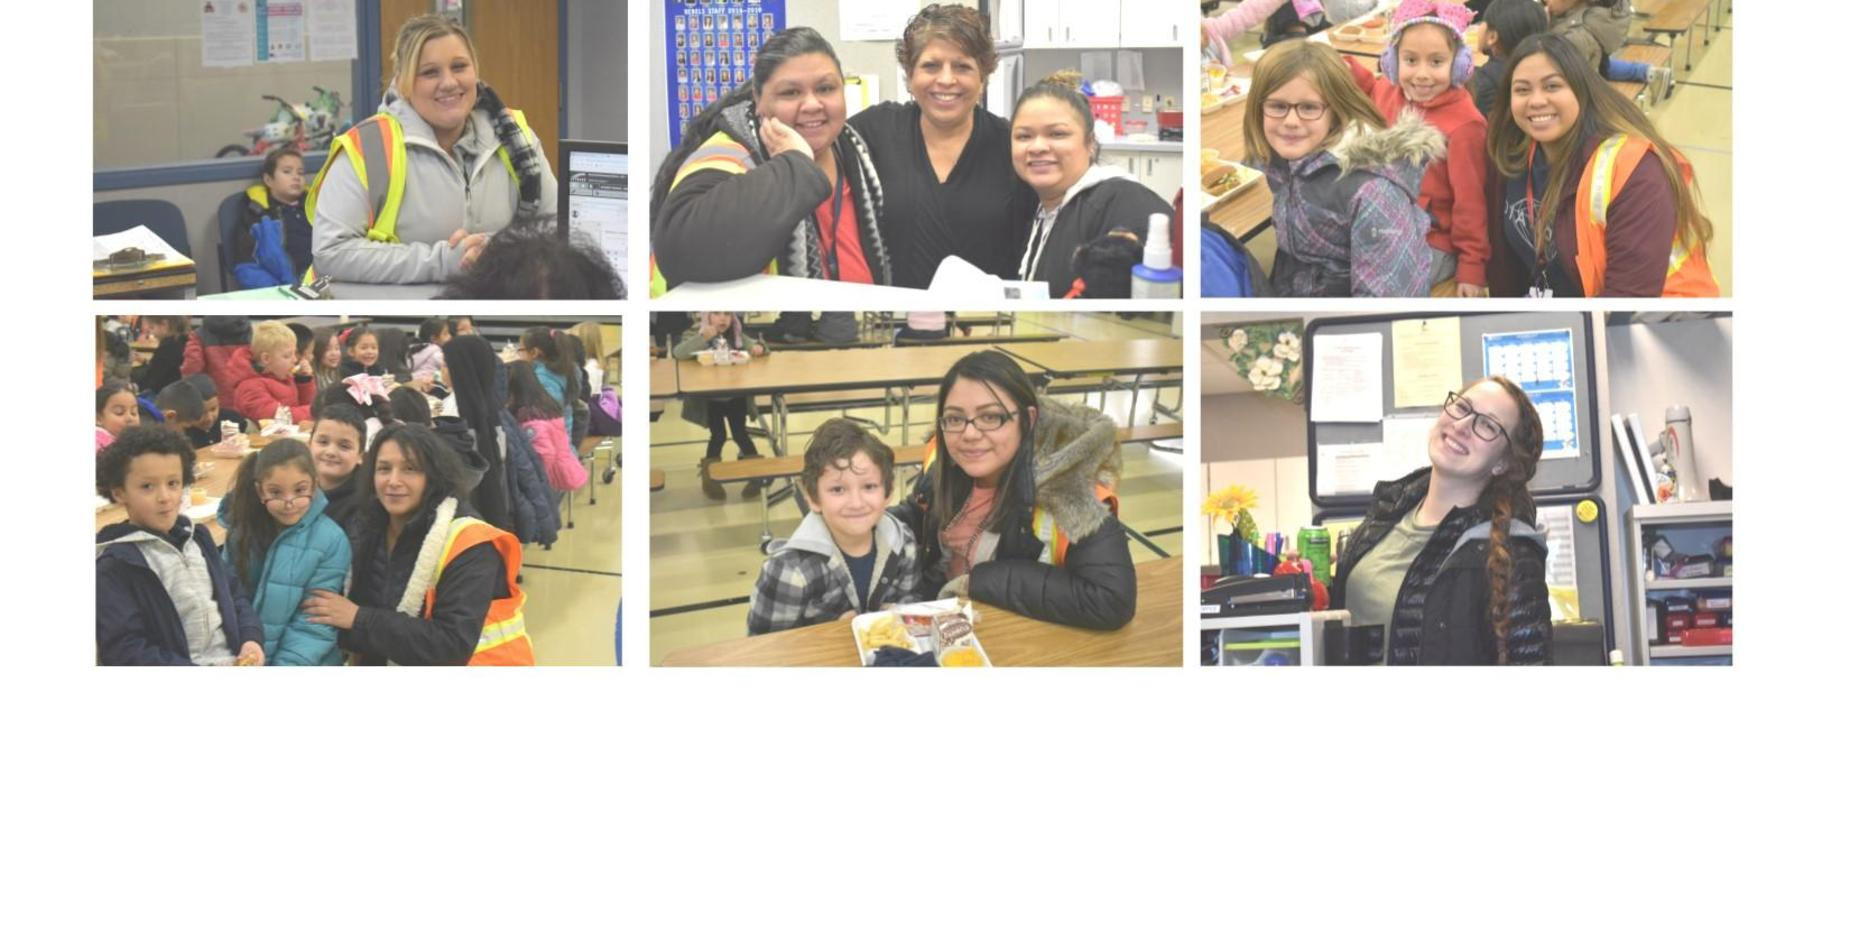 6 pictures of teachers smiling with students.